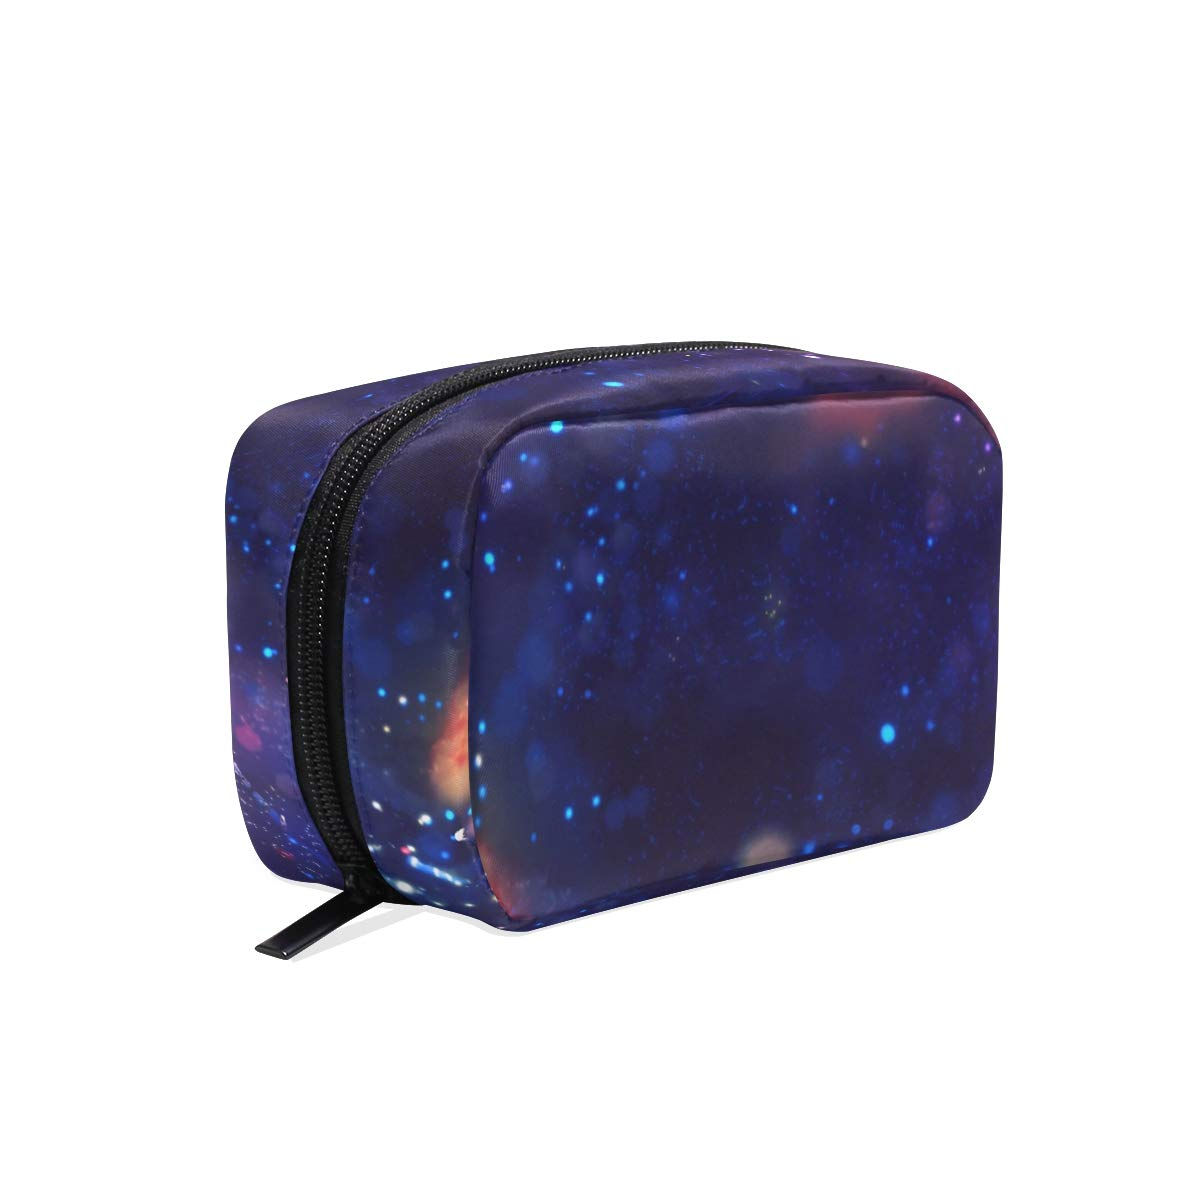 ILEEY Red And Blue Abstract Texture Cosmetic Pouch Clutch Makeup Bag Travel Organizer Case Toiletry Pouch for Women